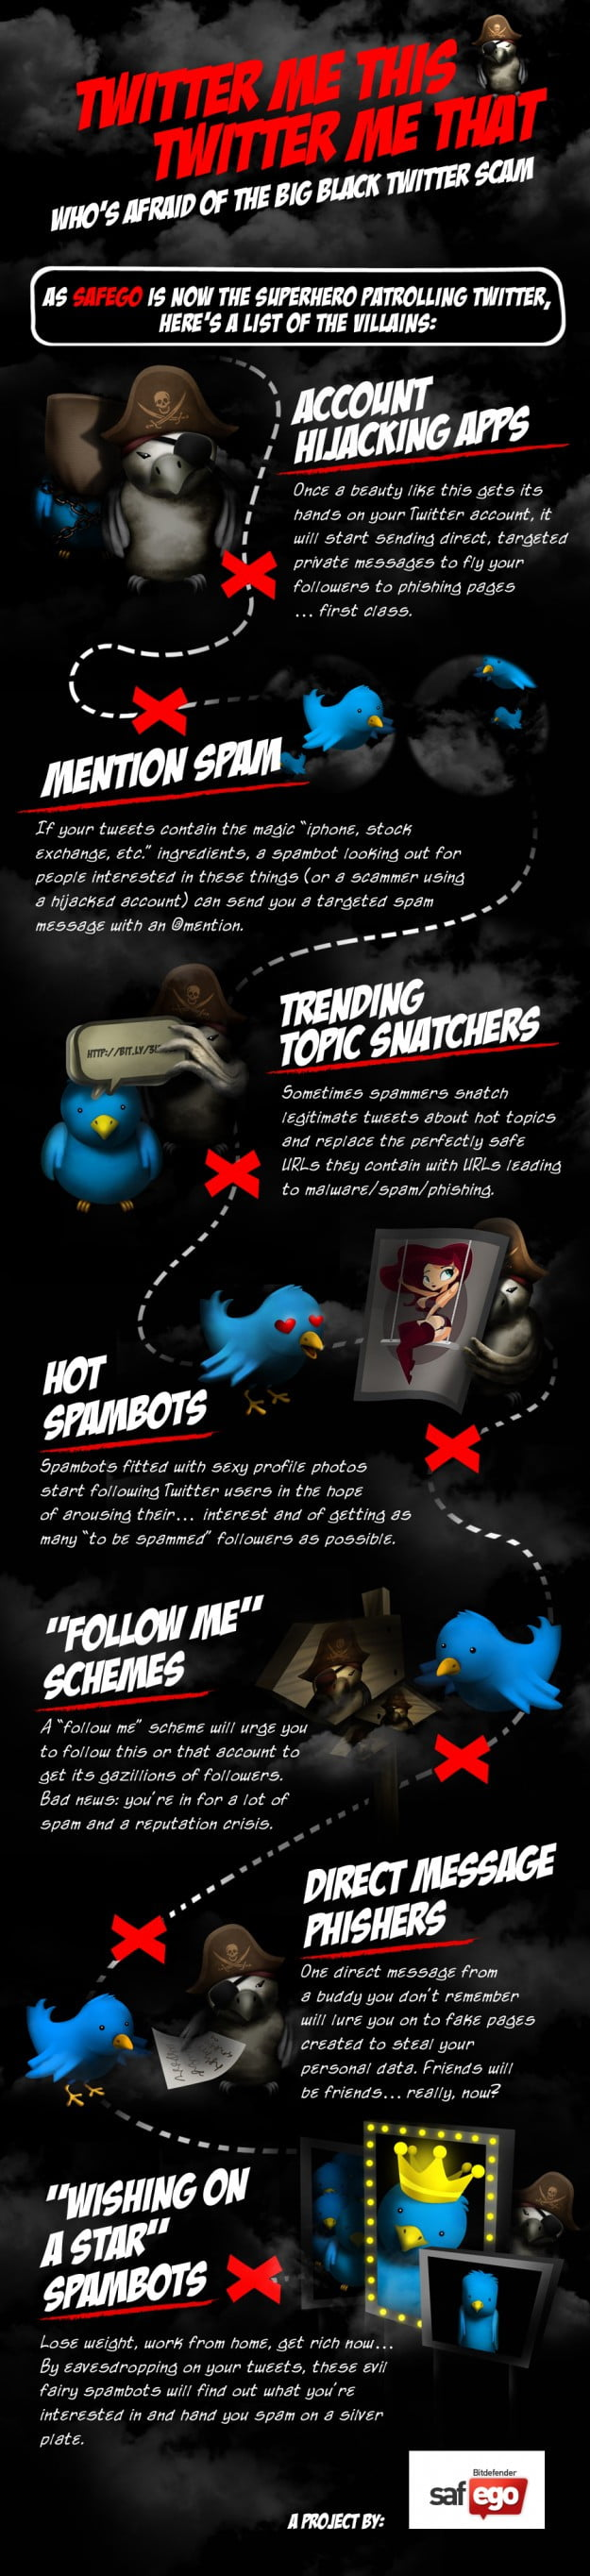 infographic twitter_02